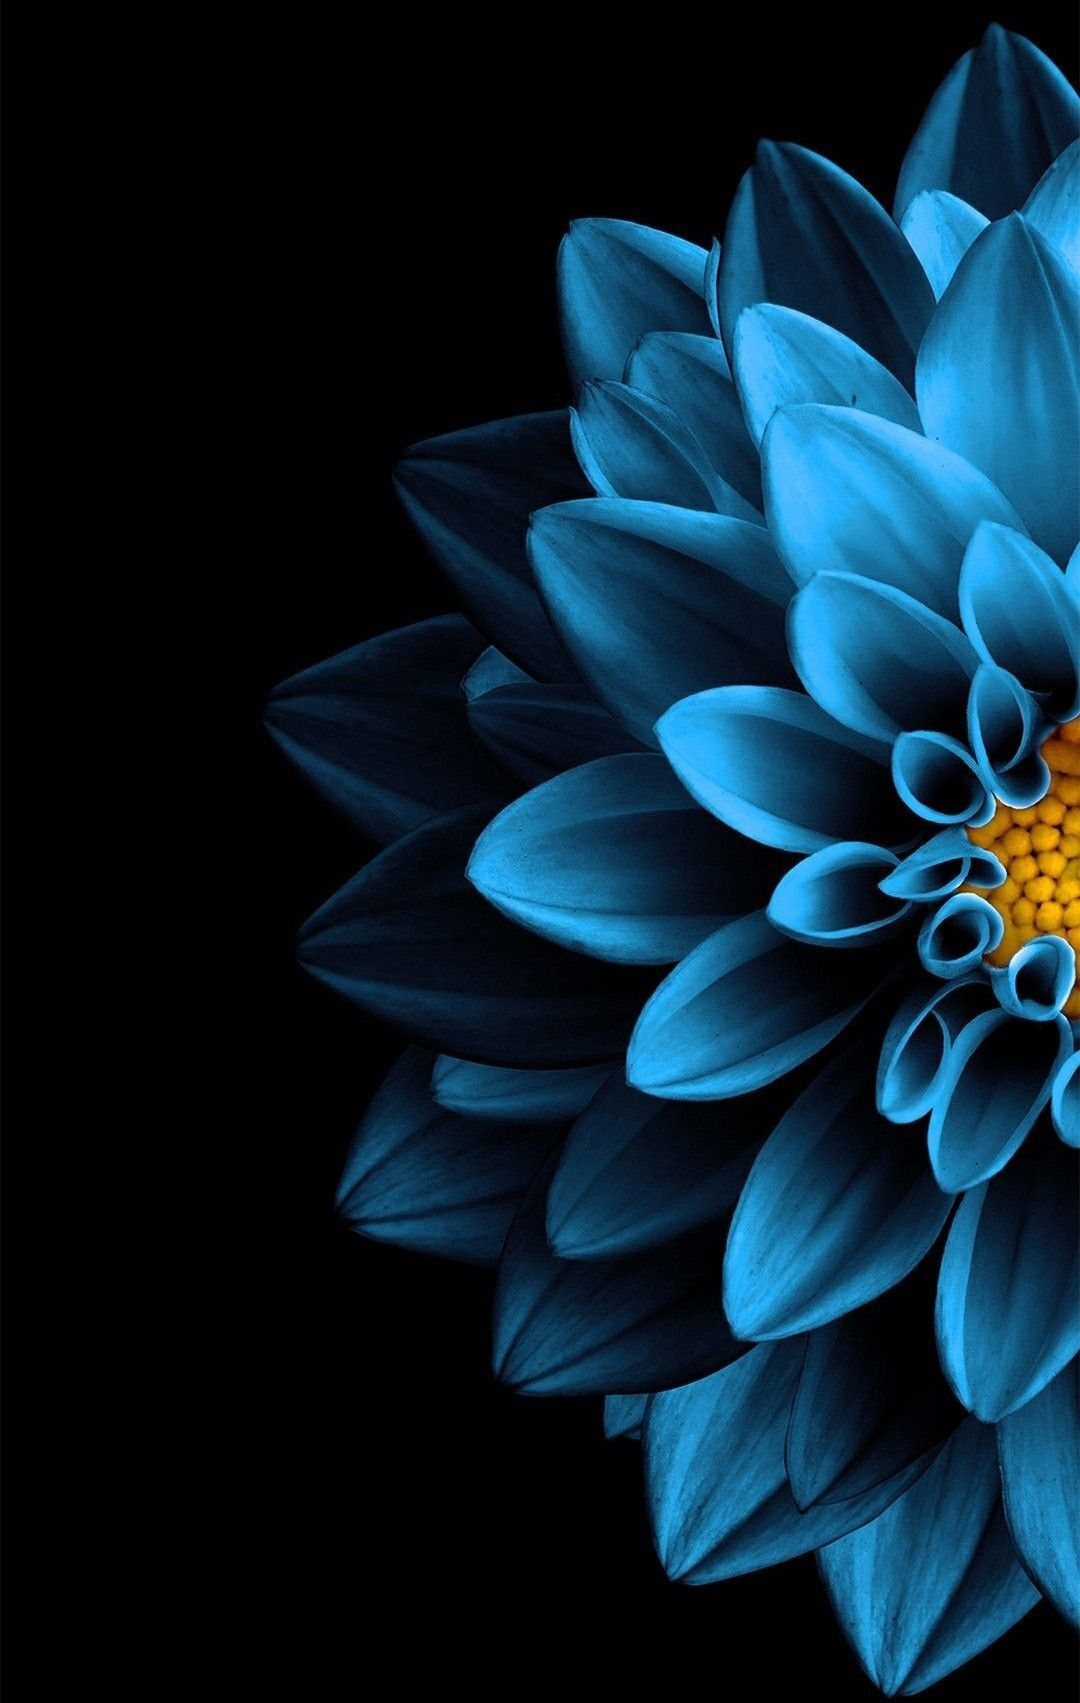 Free Download Blue Flower Nature In 2019 Black Background